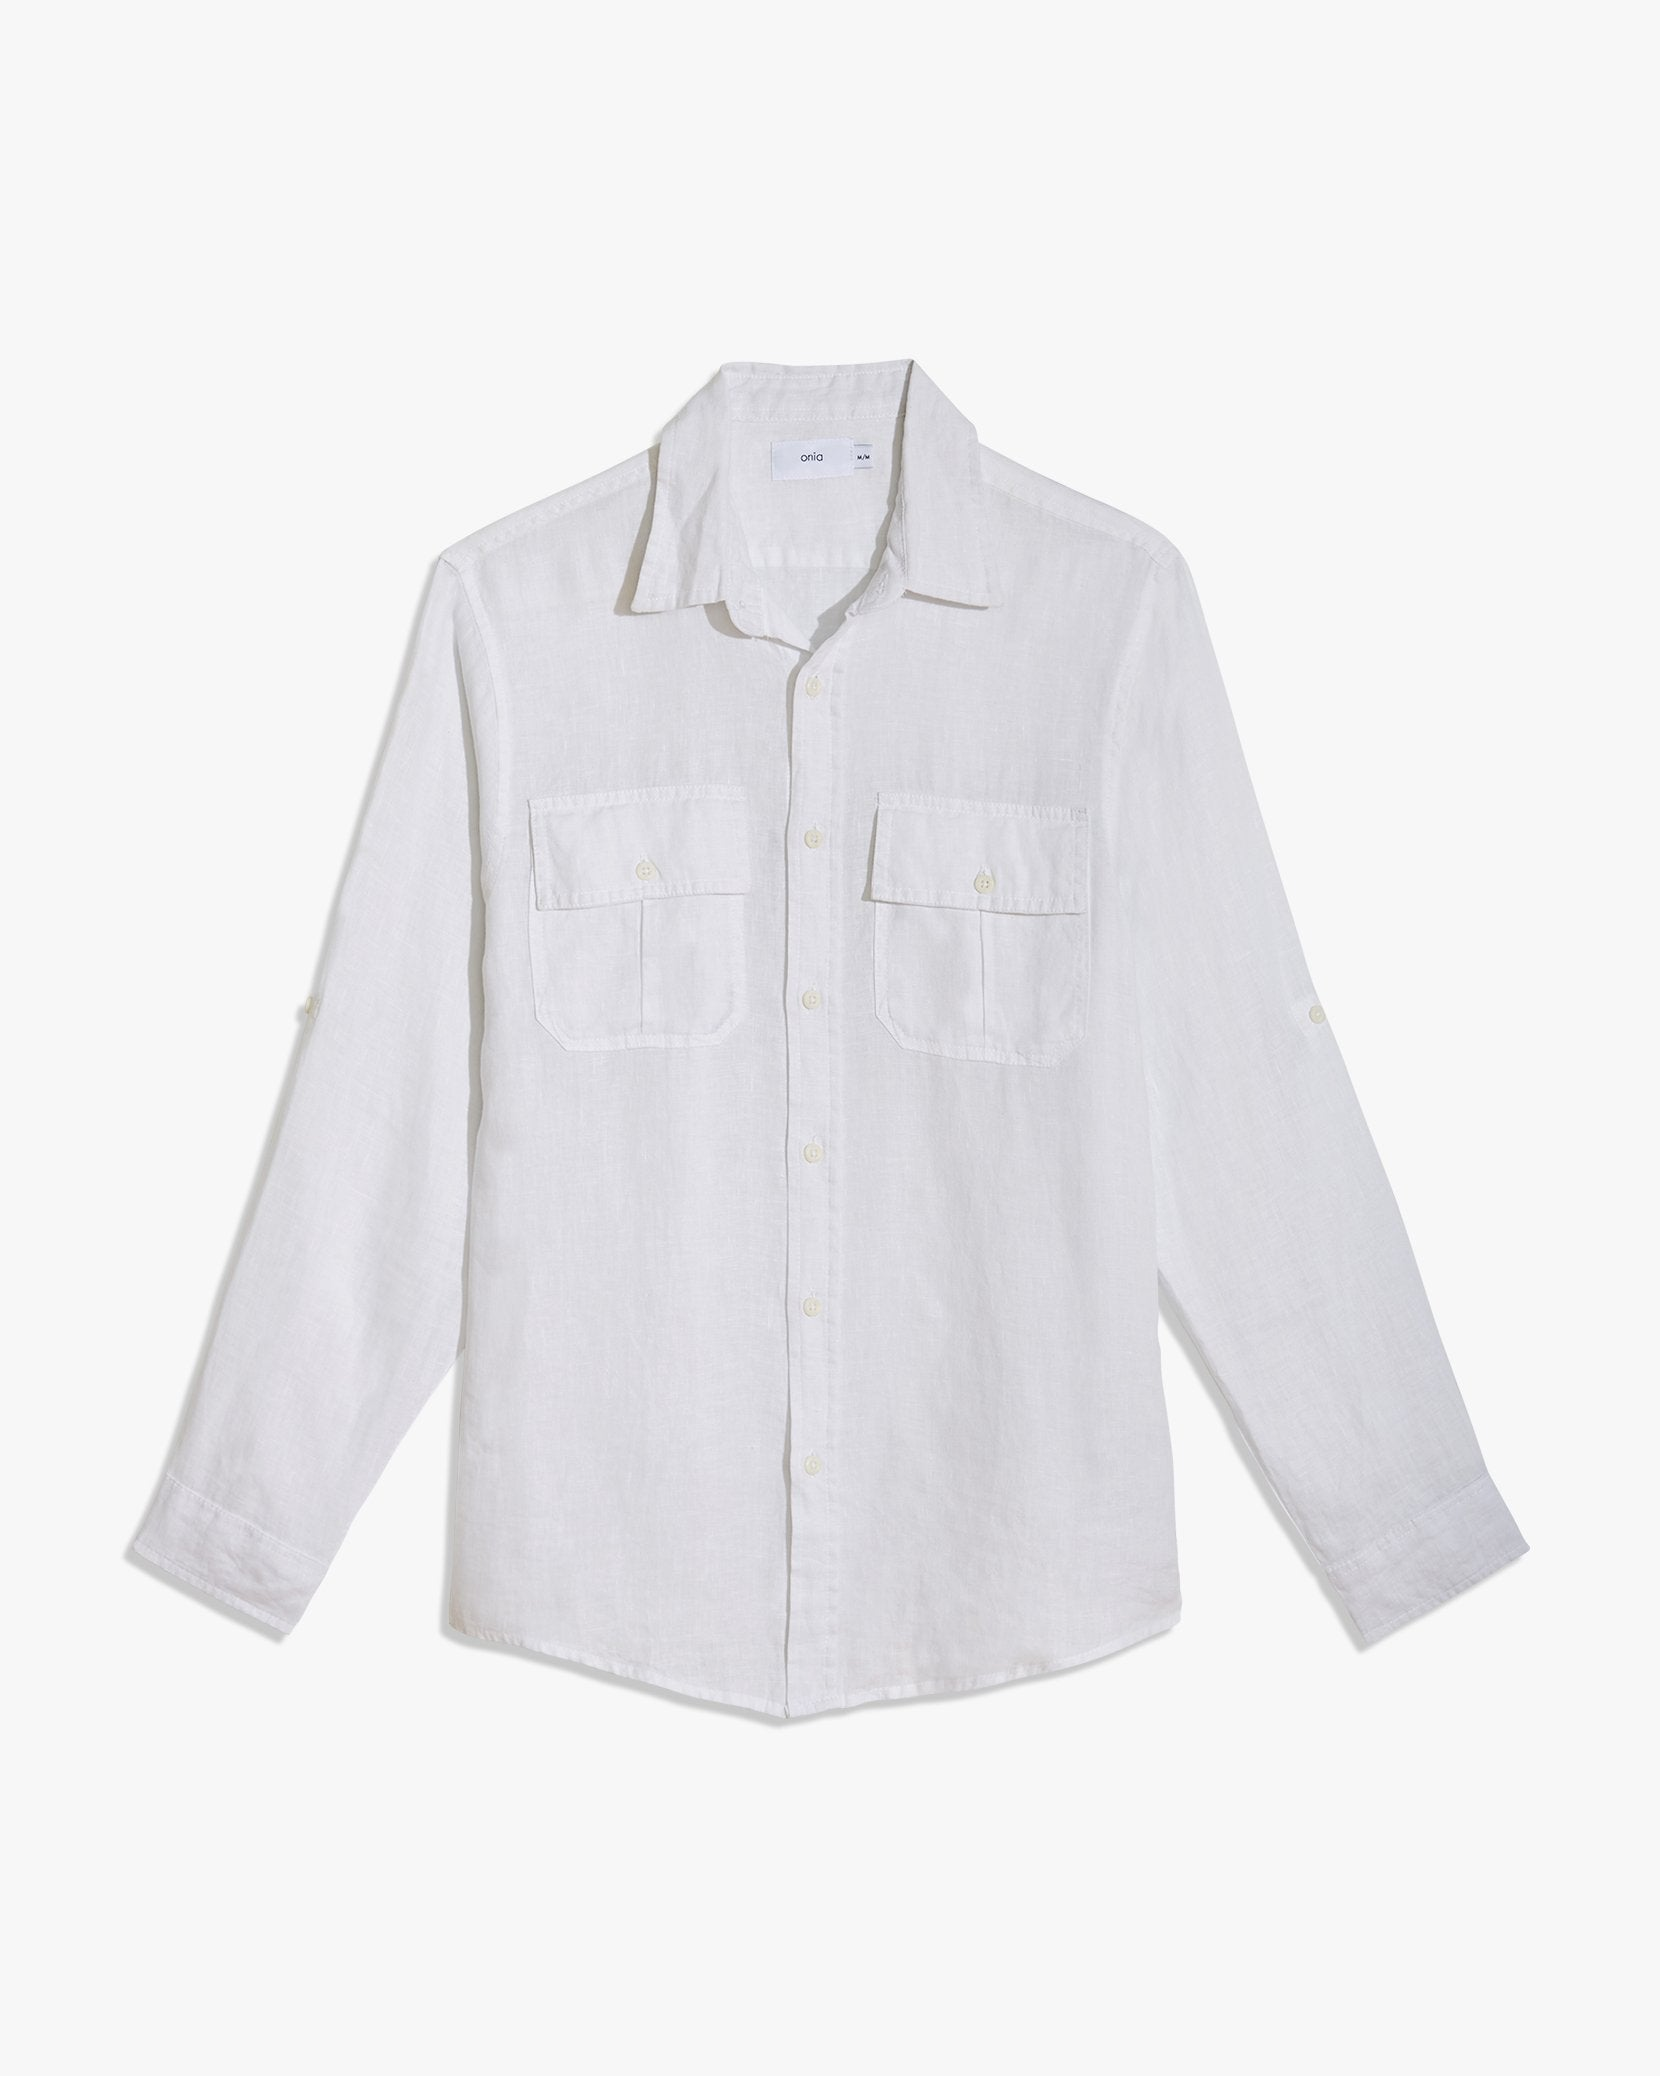 Garret Linen Shirt in White - 1 - Onia